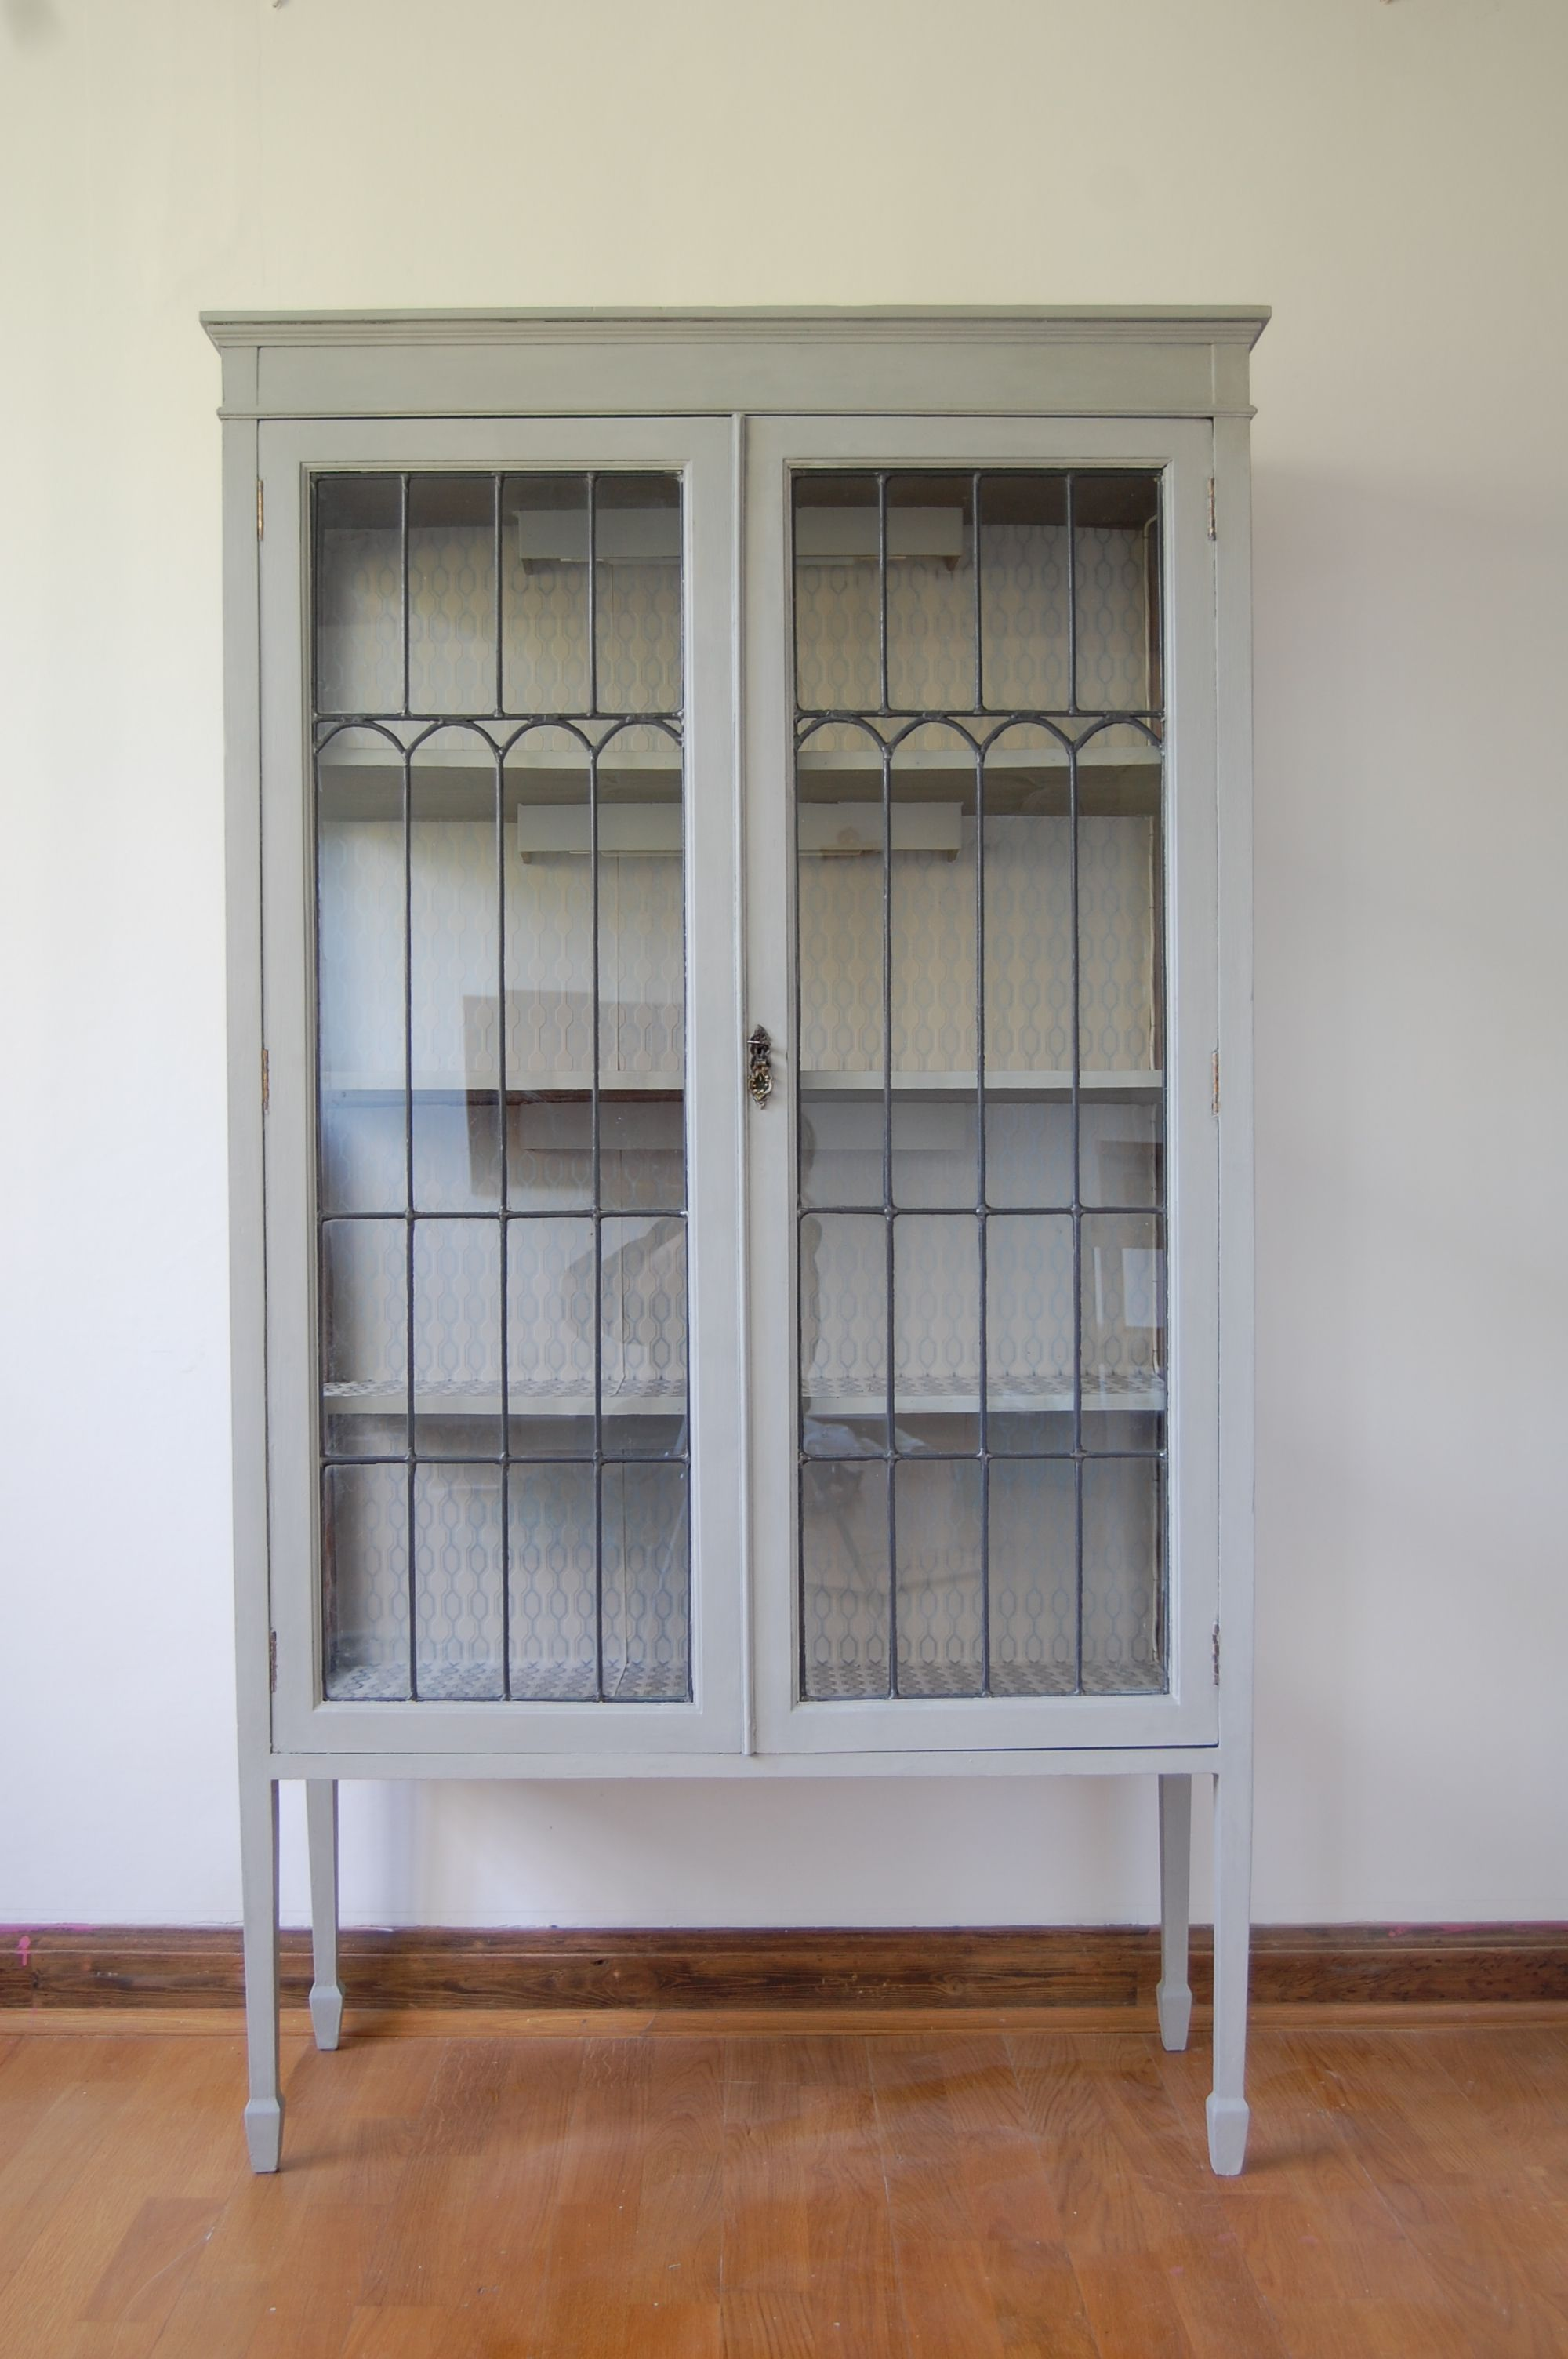 Kitchen Display Cabinet White Painted Wooden Display Cabinet Come With Clear Glass